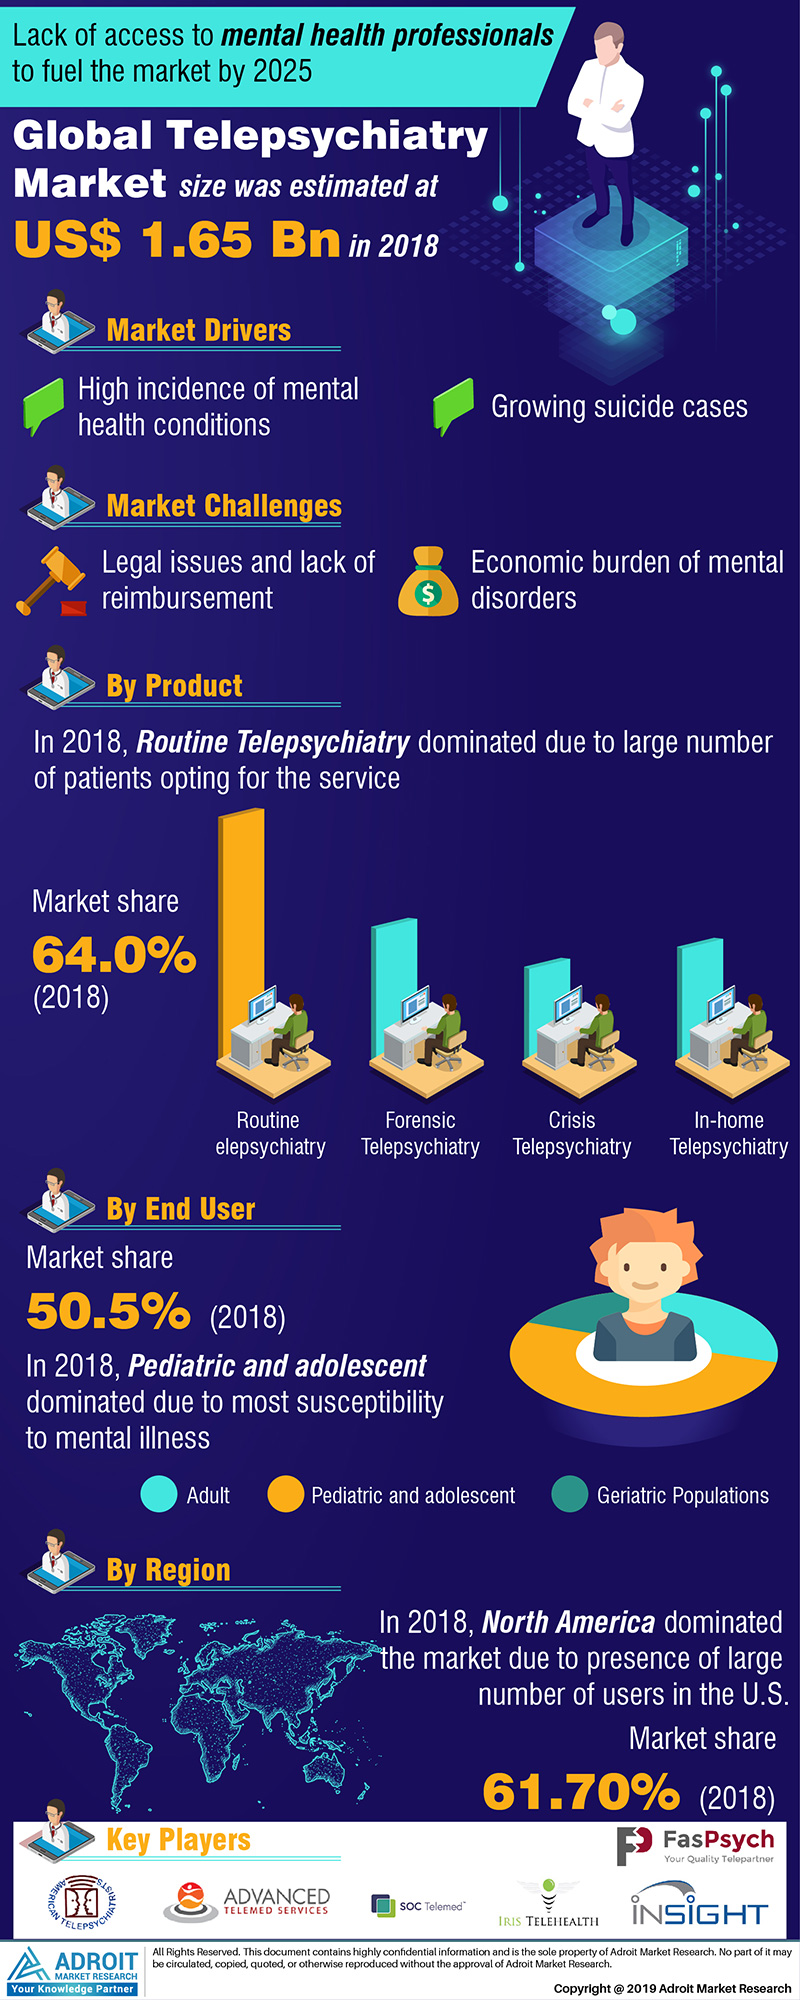 Global Telepsychiatry Market Size 2017 By Product, End-Use, Country, and Forecast 2019 to 2025